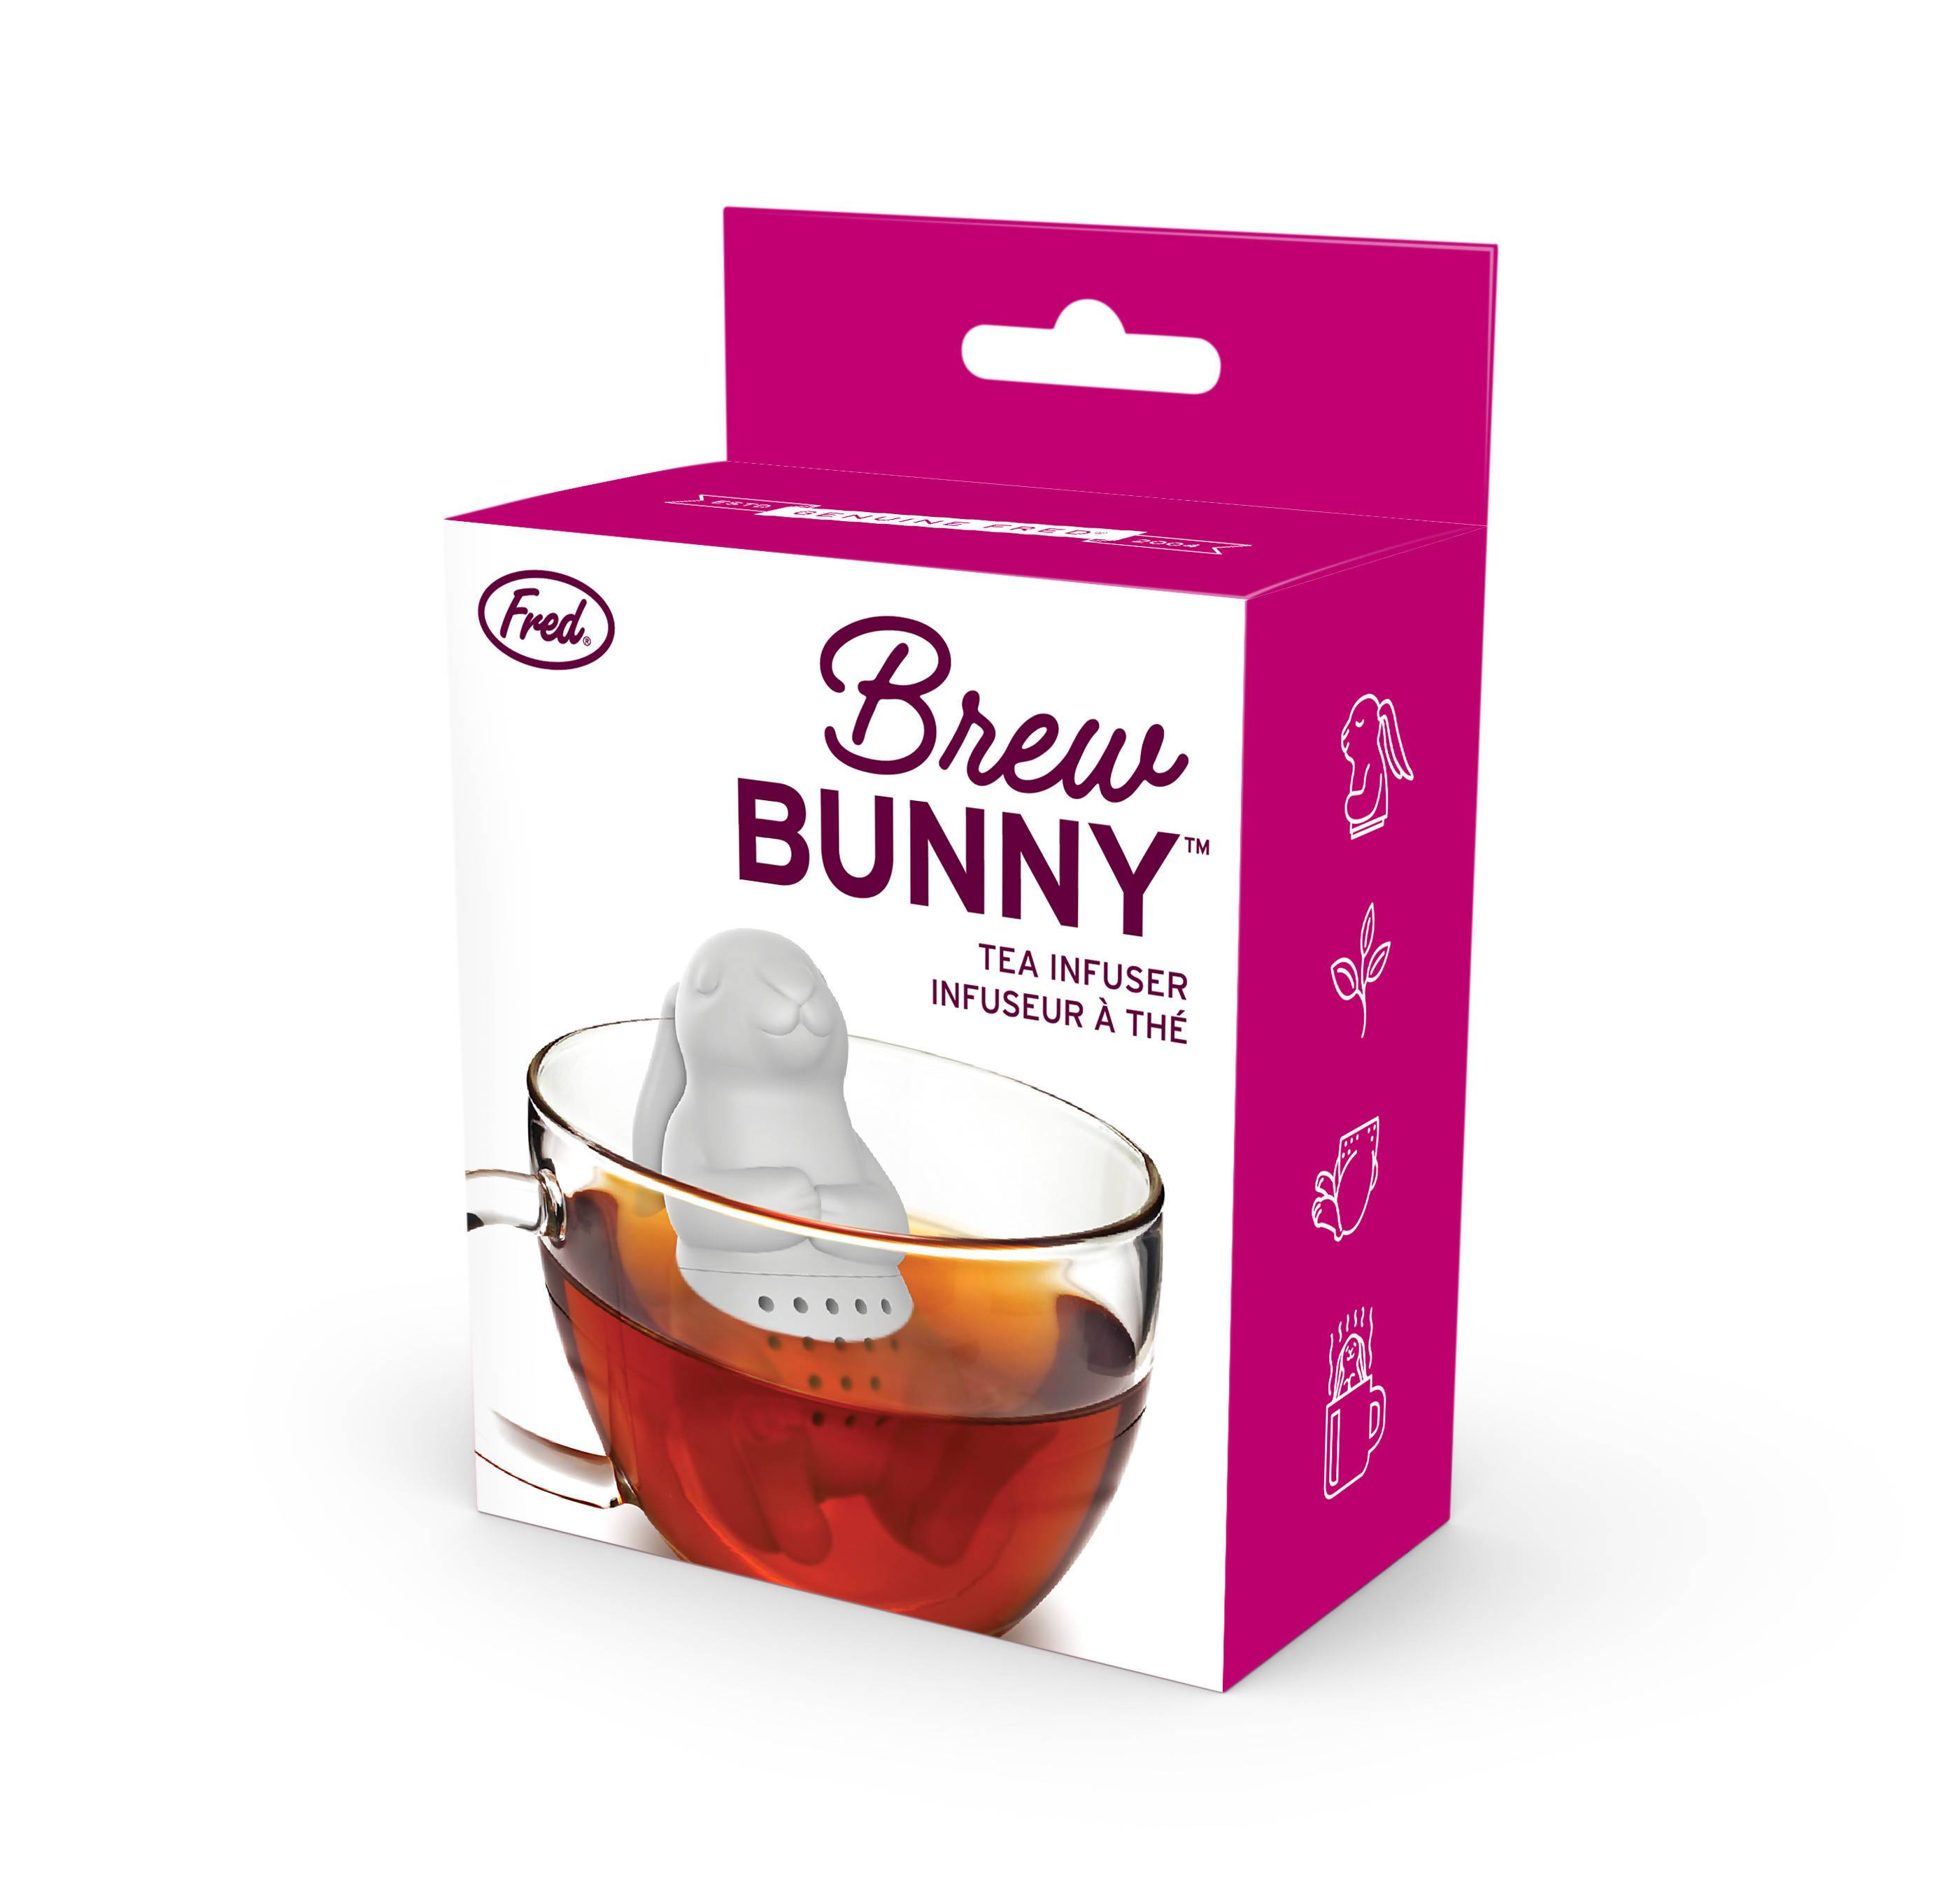 Fred Brew Bunny Tea Infuser - Tea Infusers - The Planet Collection - Naiise